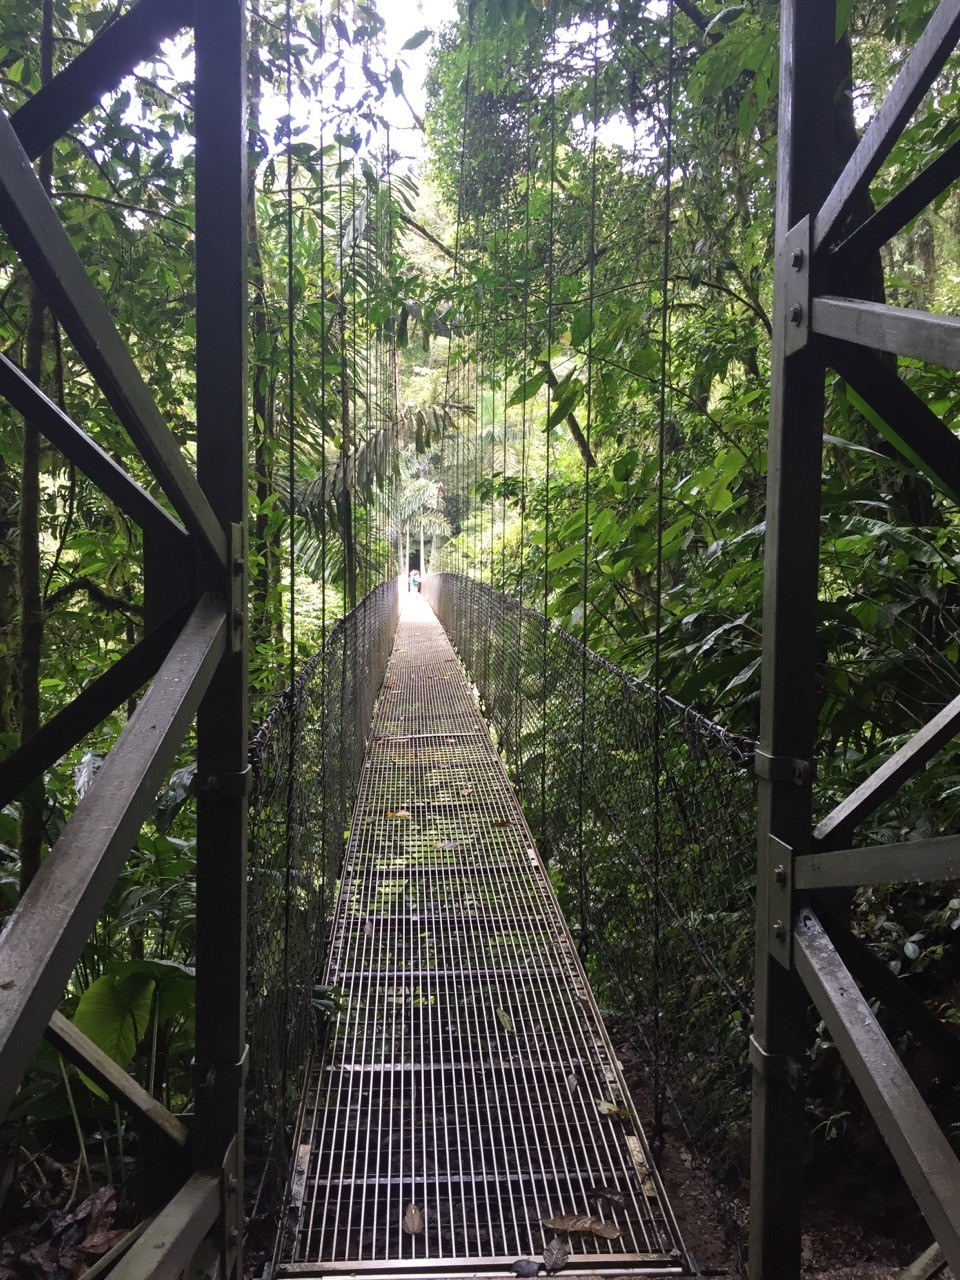 A hike along hanging bridges.